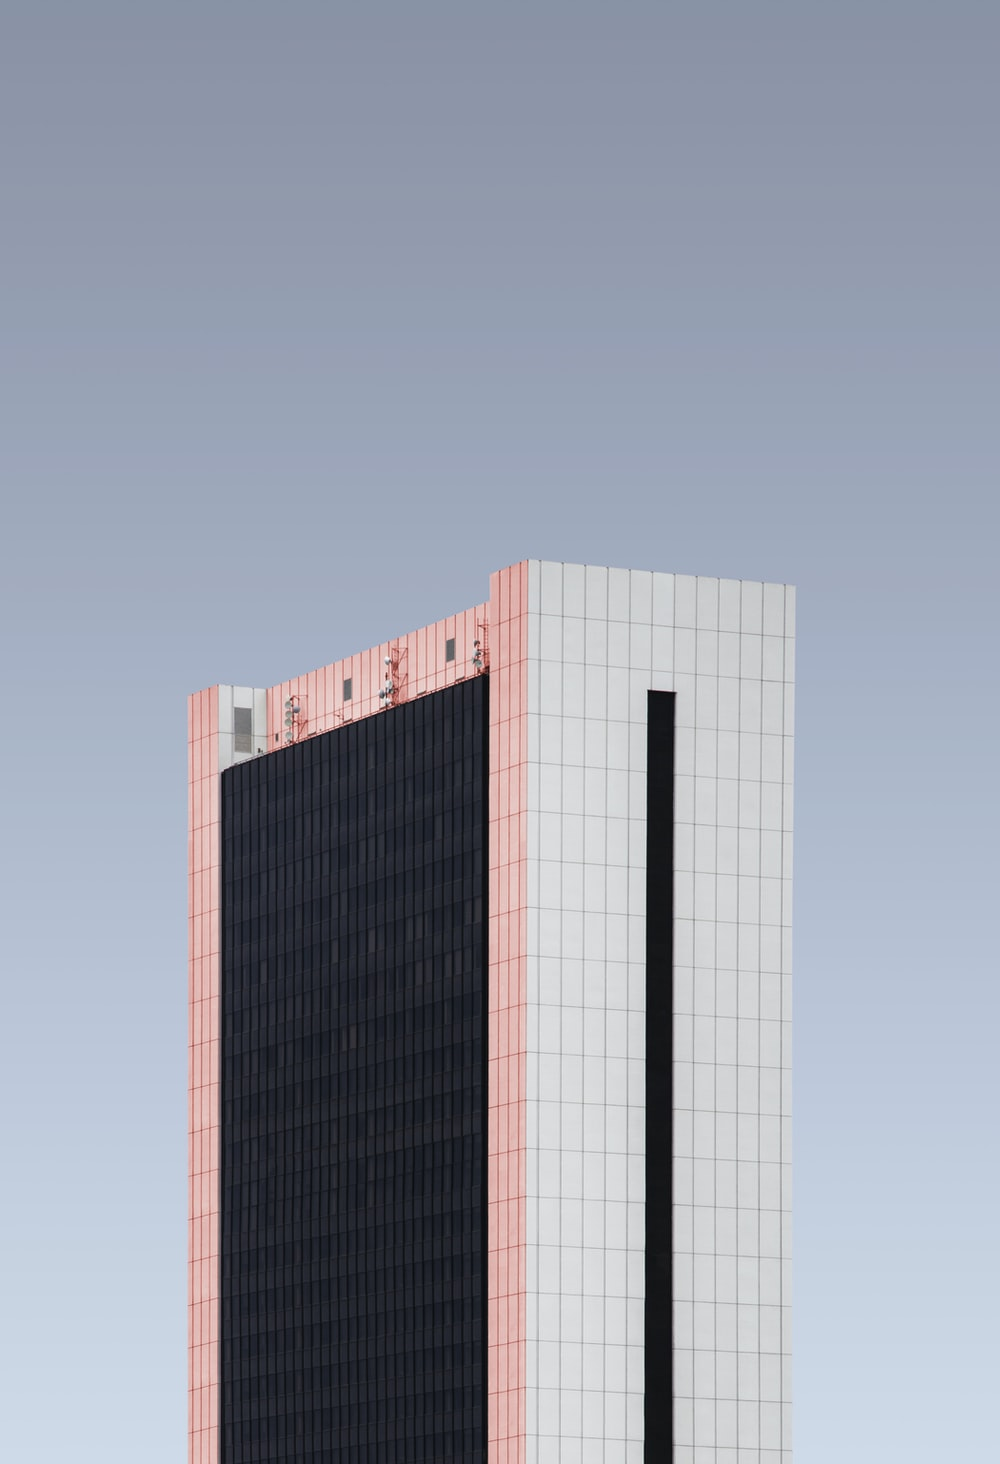 gray and black concrete high-rise building during daytime